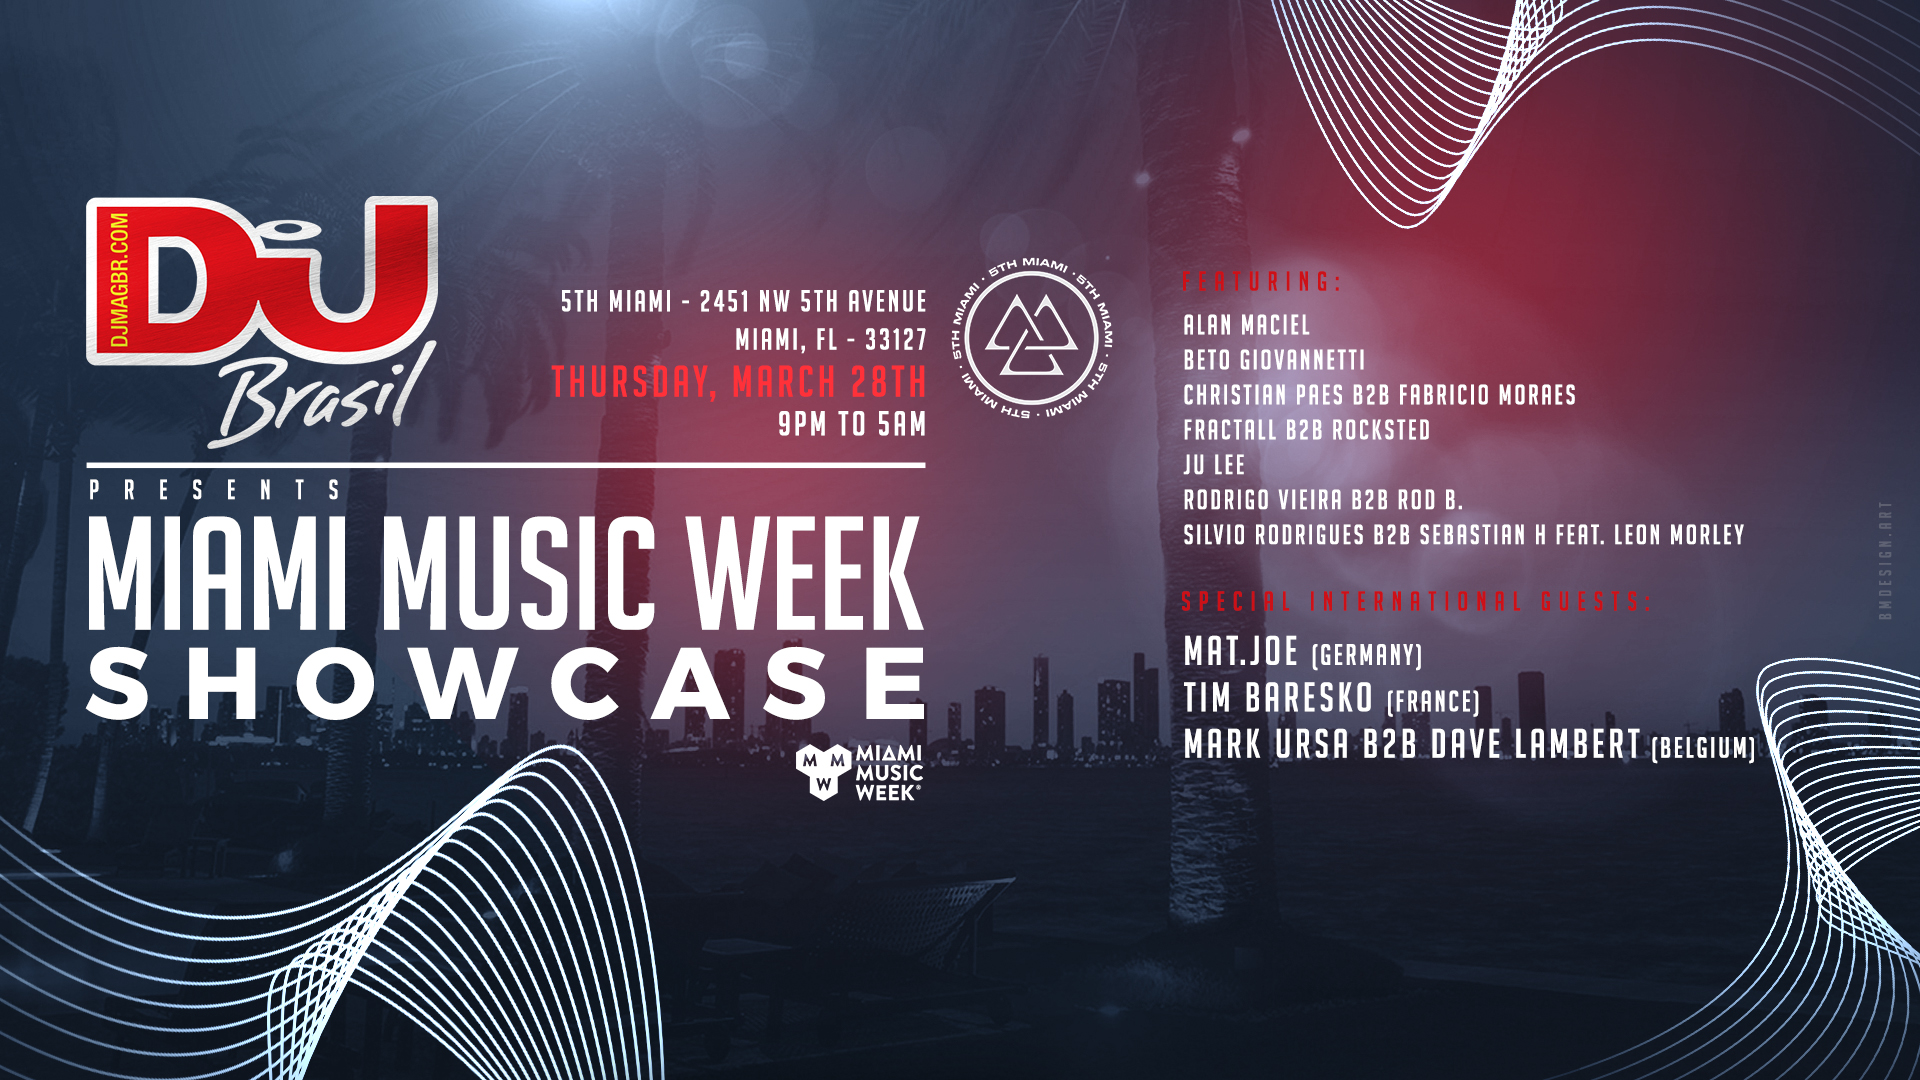 DJ Mag Brasil | Miami Music Week Showcase Image